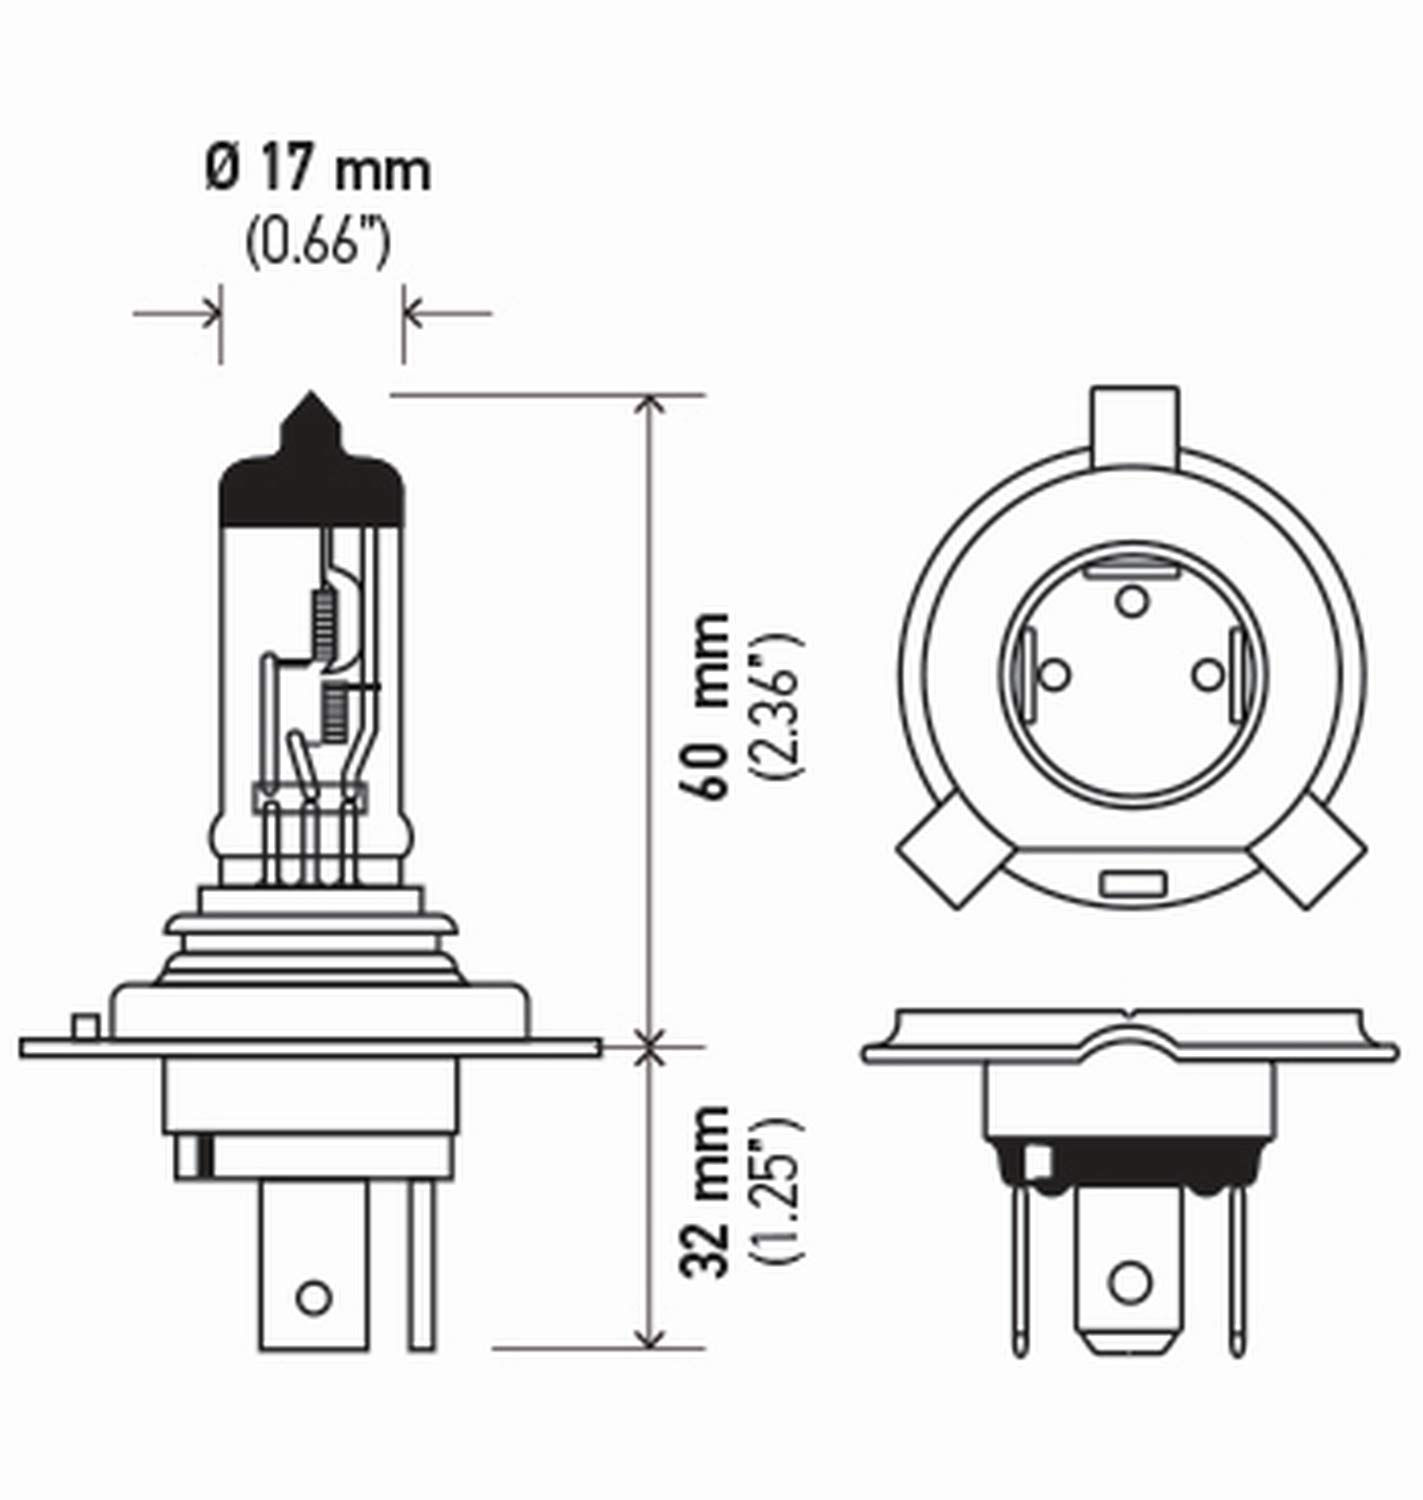 innoviative 260 4400 1 part for 12v led wiring diagram